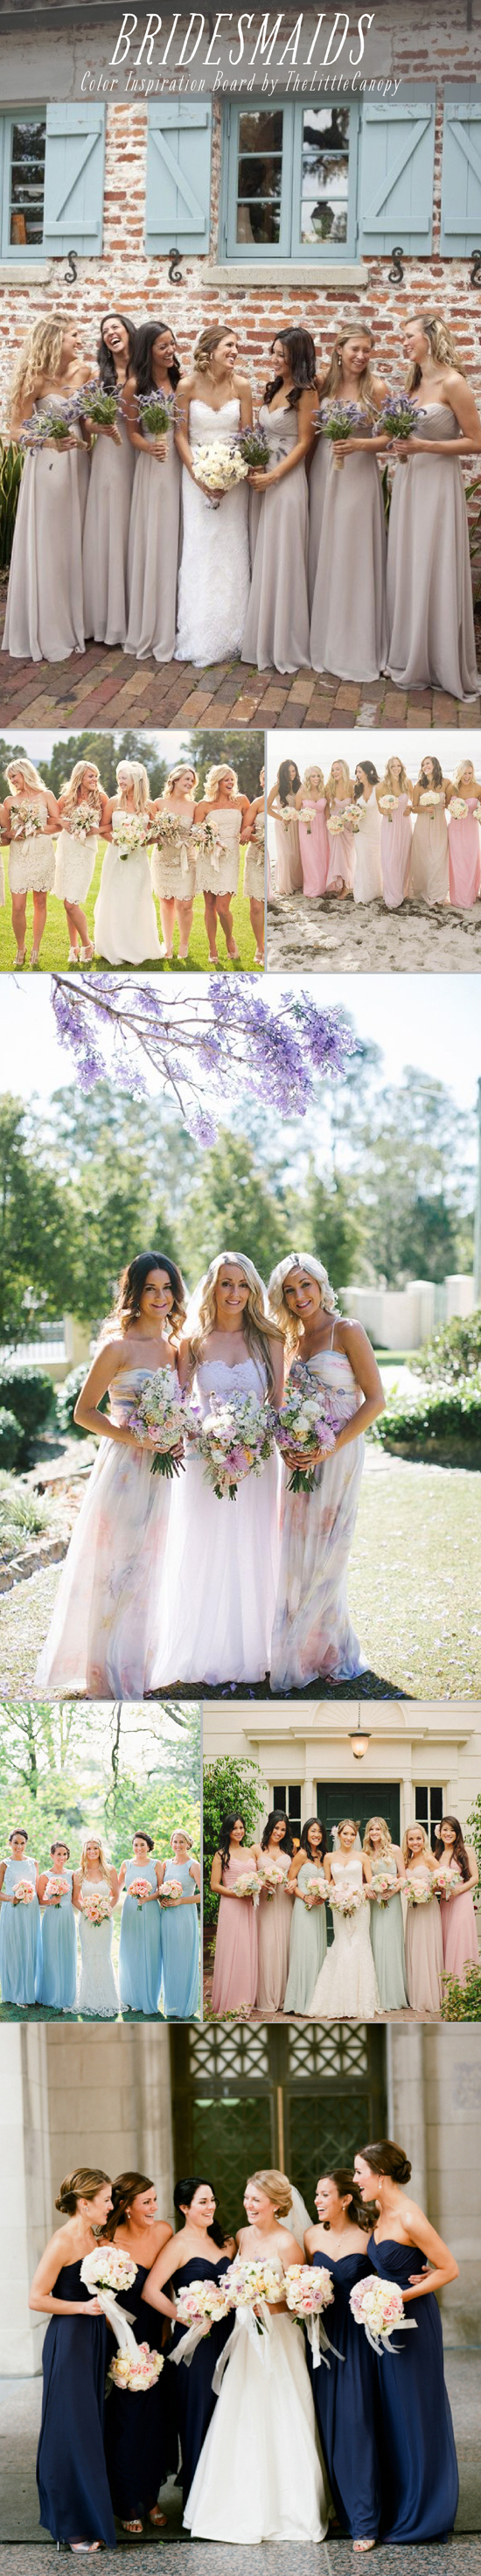 Inspiration Board: Bridesmaid Colors // Here's a board with a couple romantic color themes for a detail of your special day - your bridesmaids! They help frame you in photos and set the tone along with the flowers at your wedding. Enjoy!